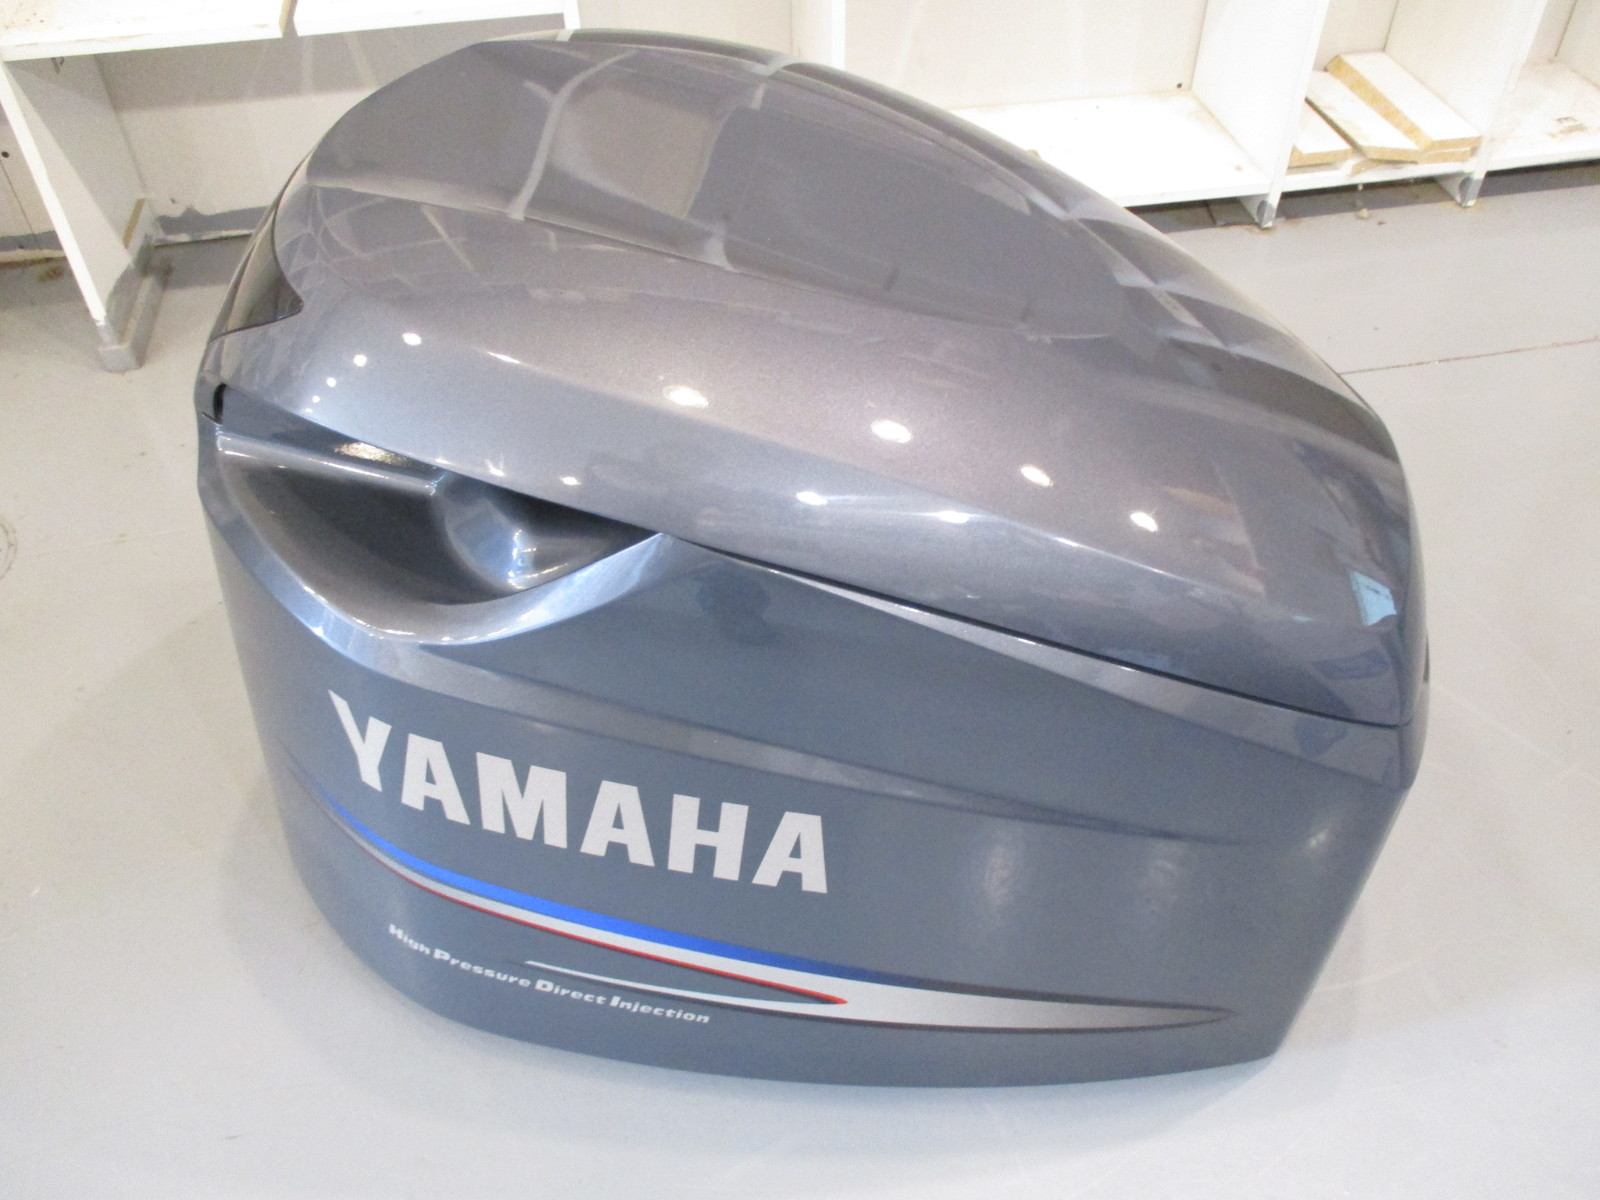 Yamaha outboard top cowl motor cover 250 hp high pressure for Yamaha boat cover